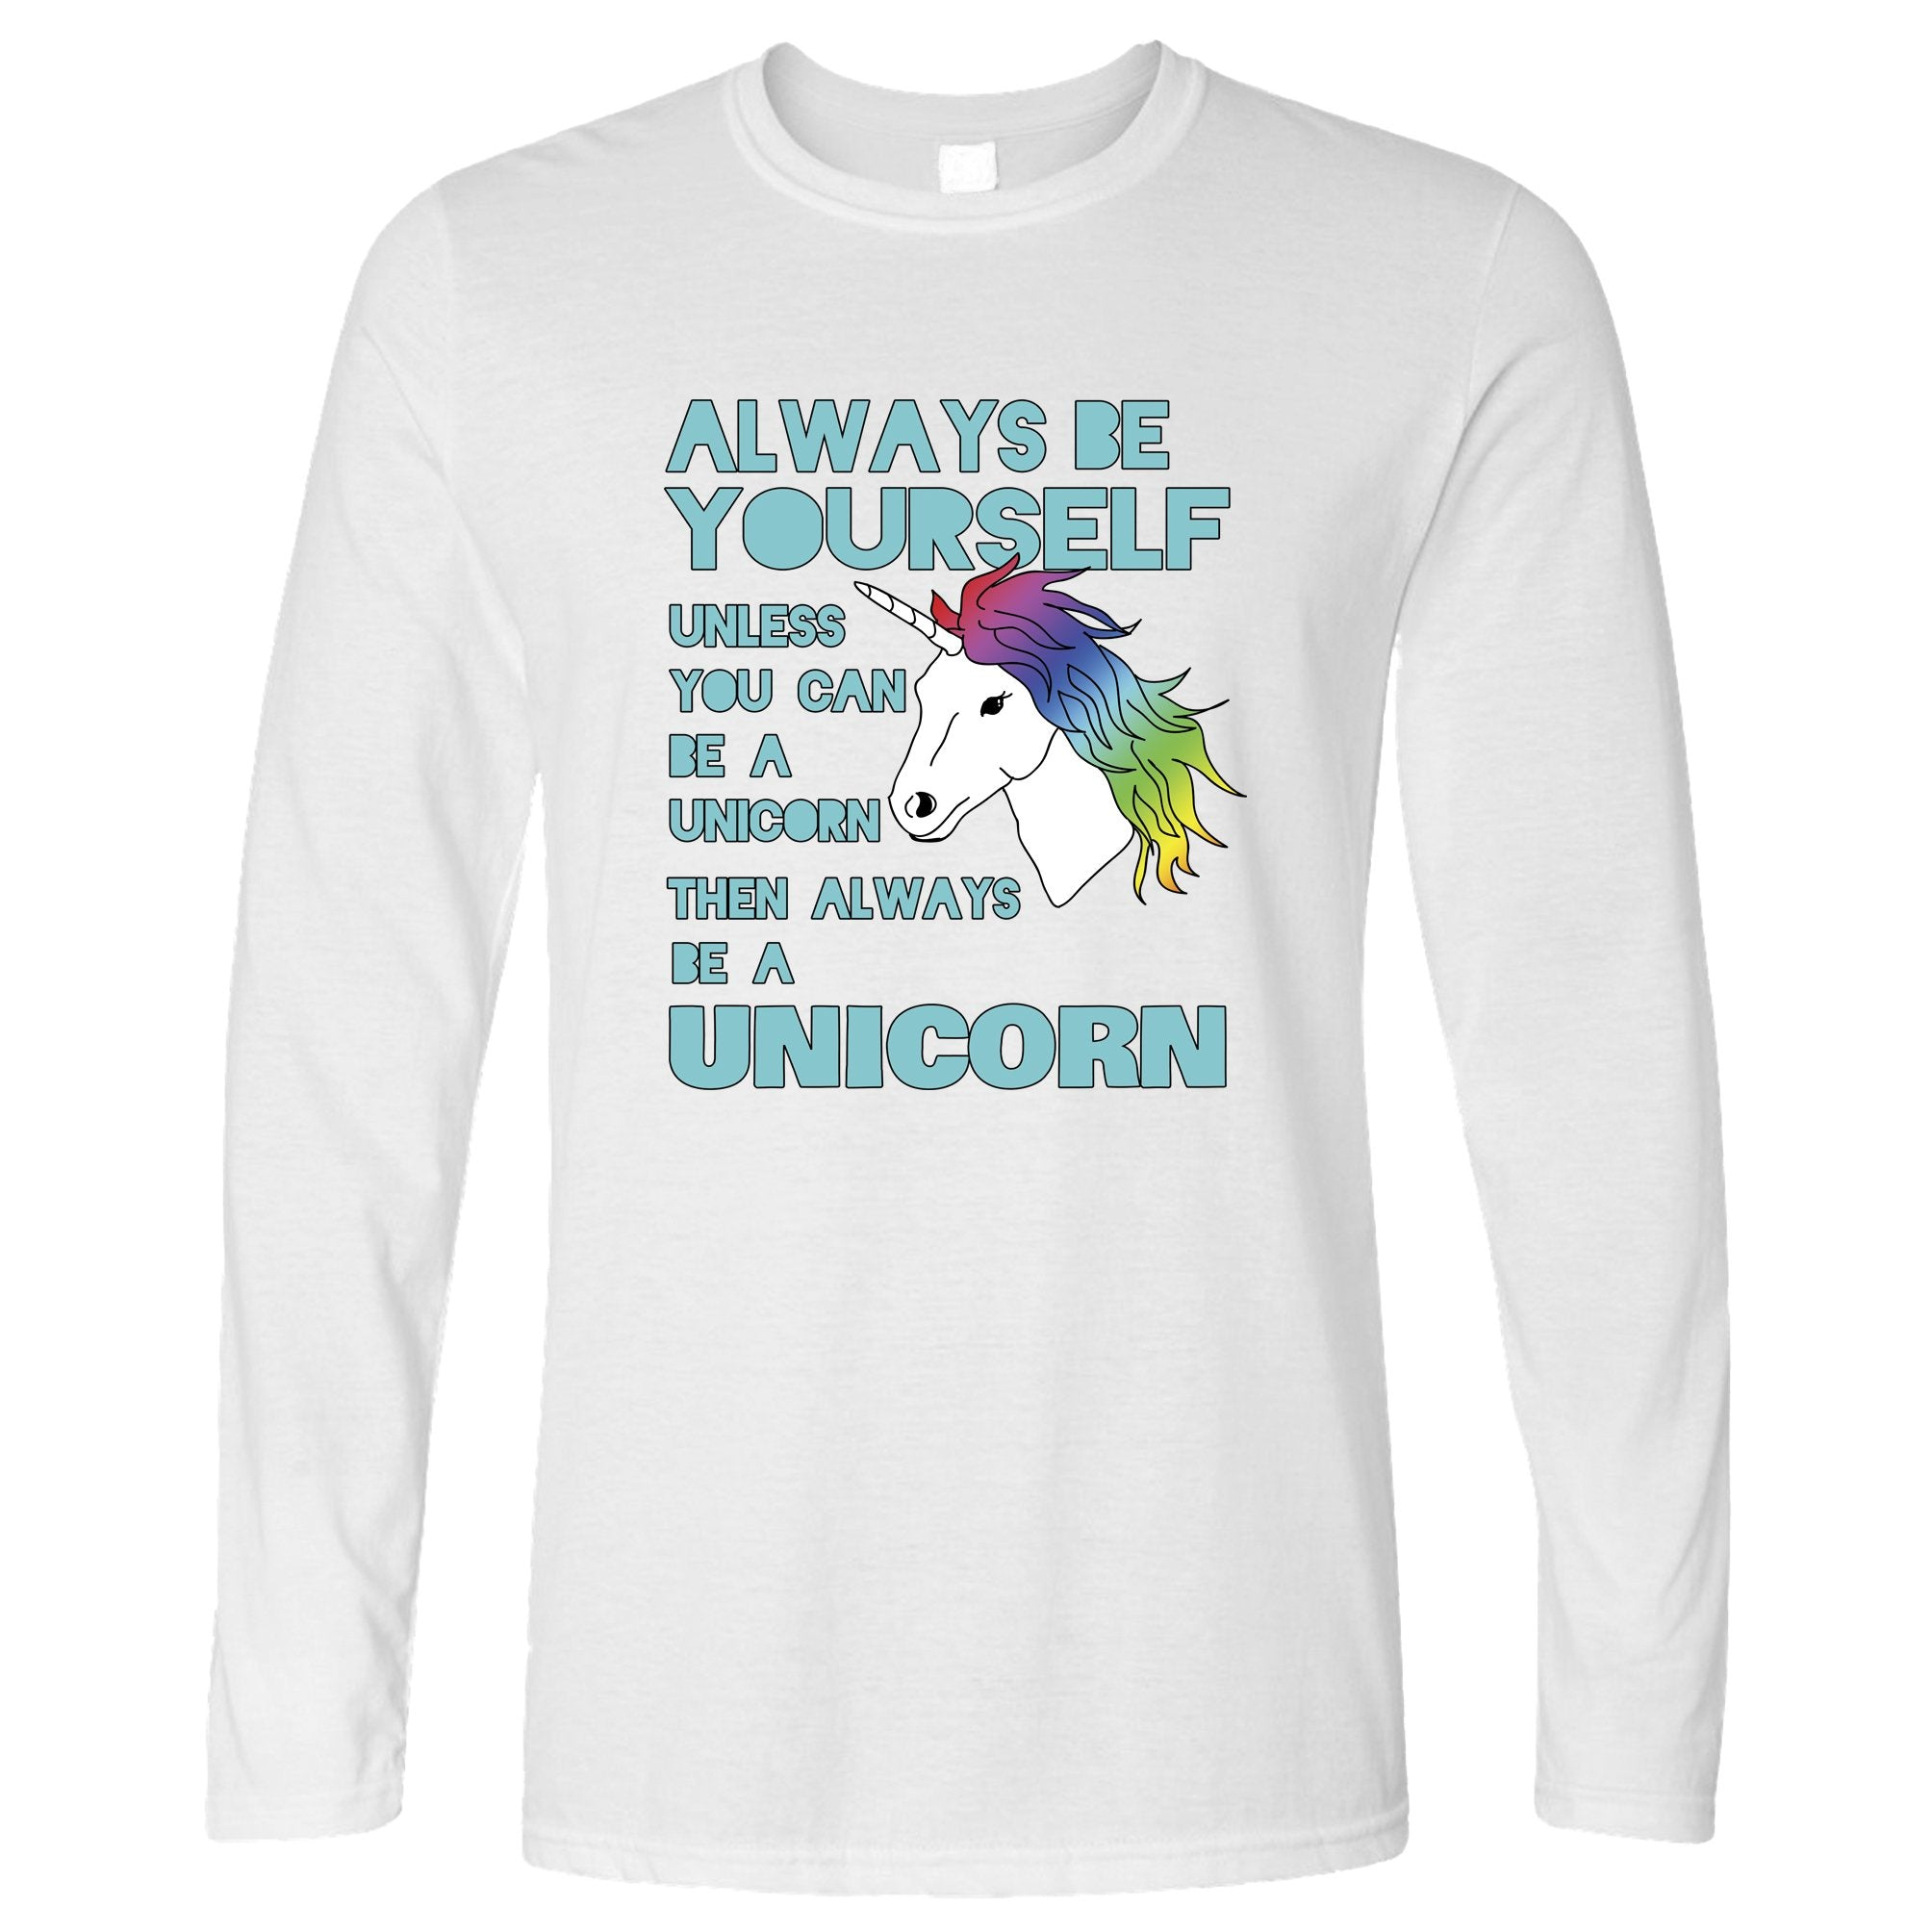 Novelty Unicorn Long Sleeve Always Be Yourself T-Shirt